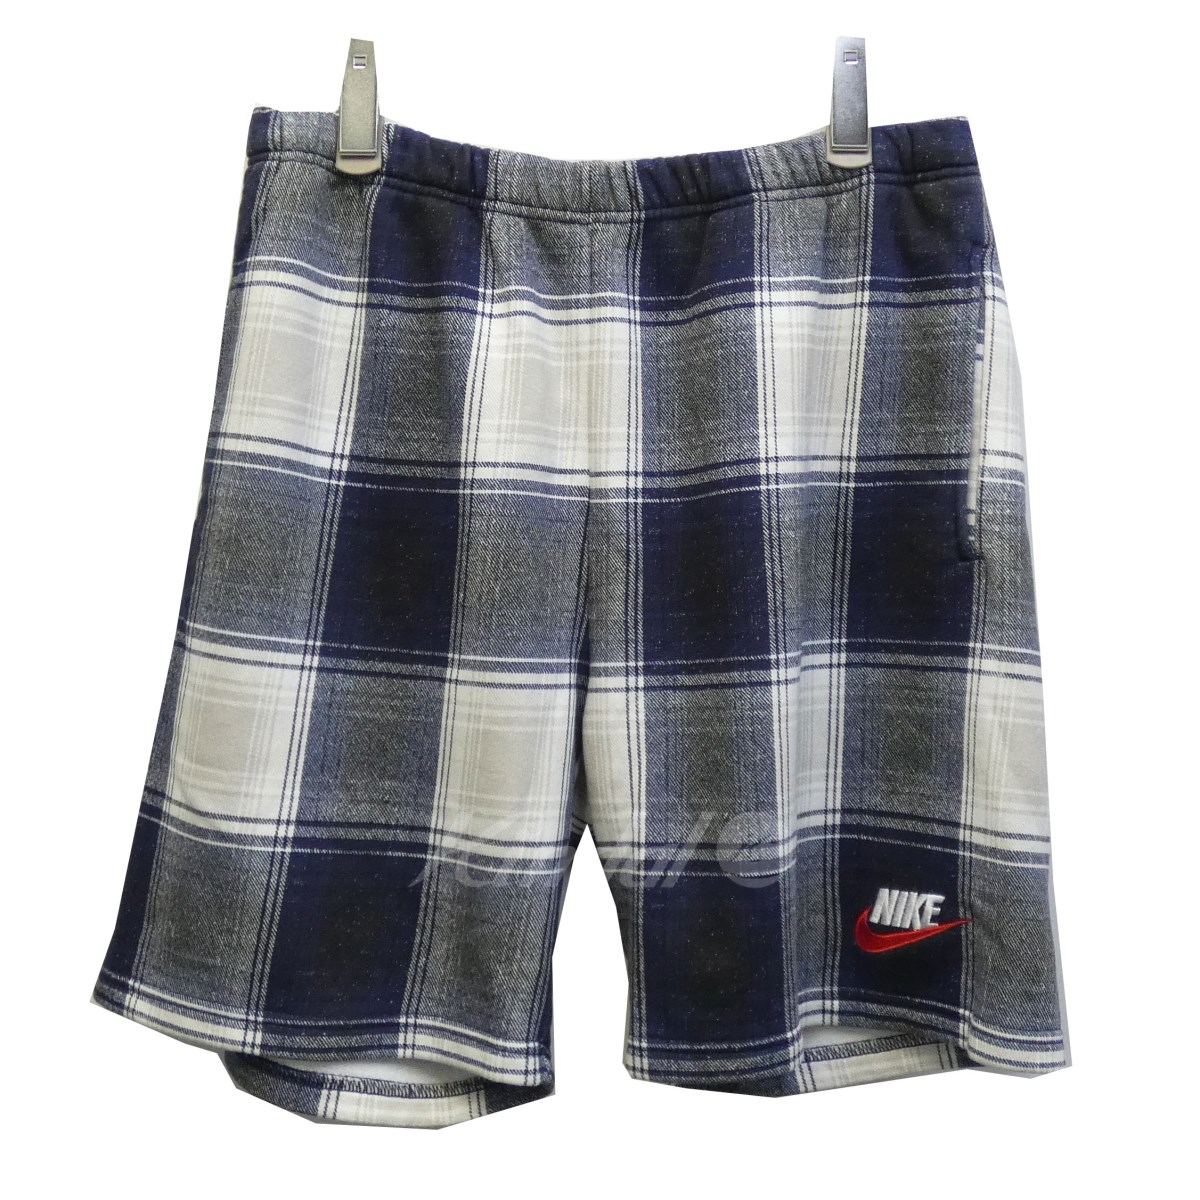 【中古】SUPREME×NIKE 18AW「Plaid Sweatshort」チェックショーツ 【送料無料】 【116537】 【KIND1641】